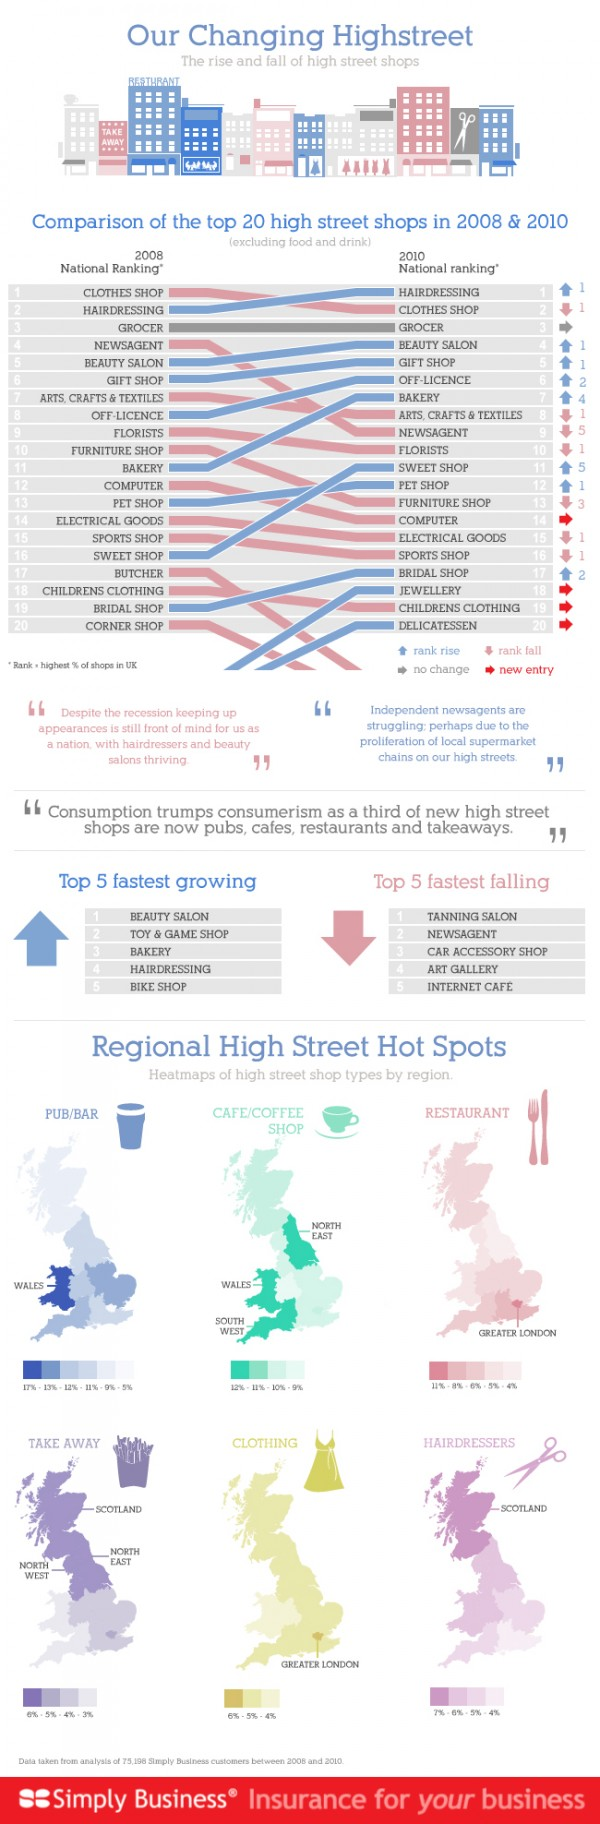 high-street-britain-infographic